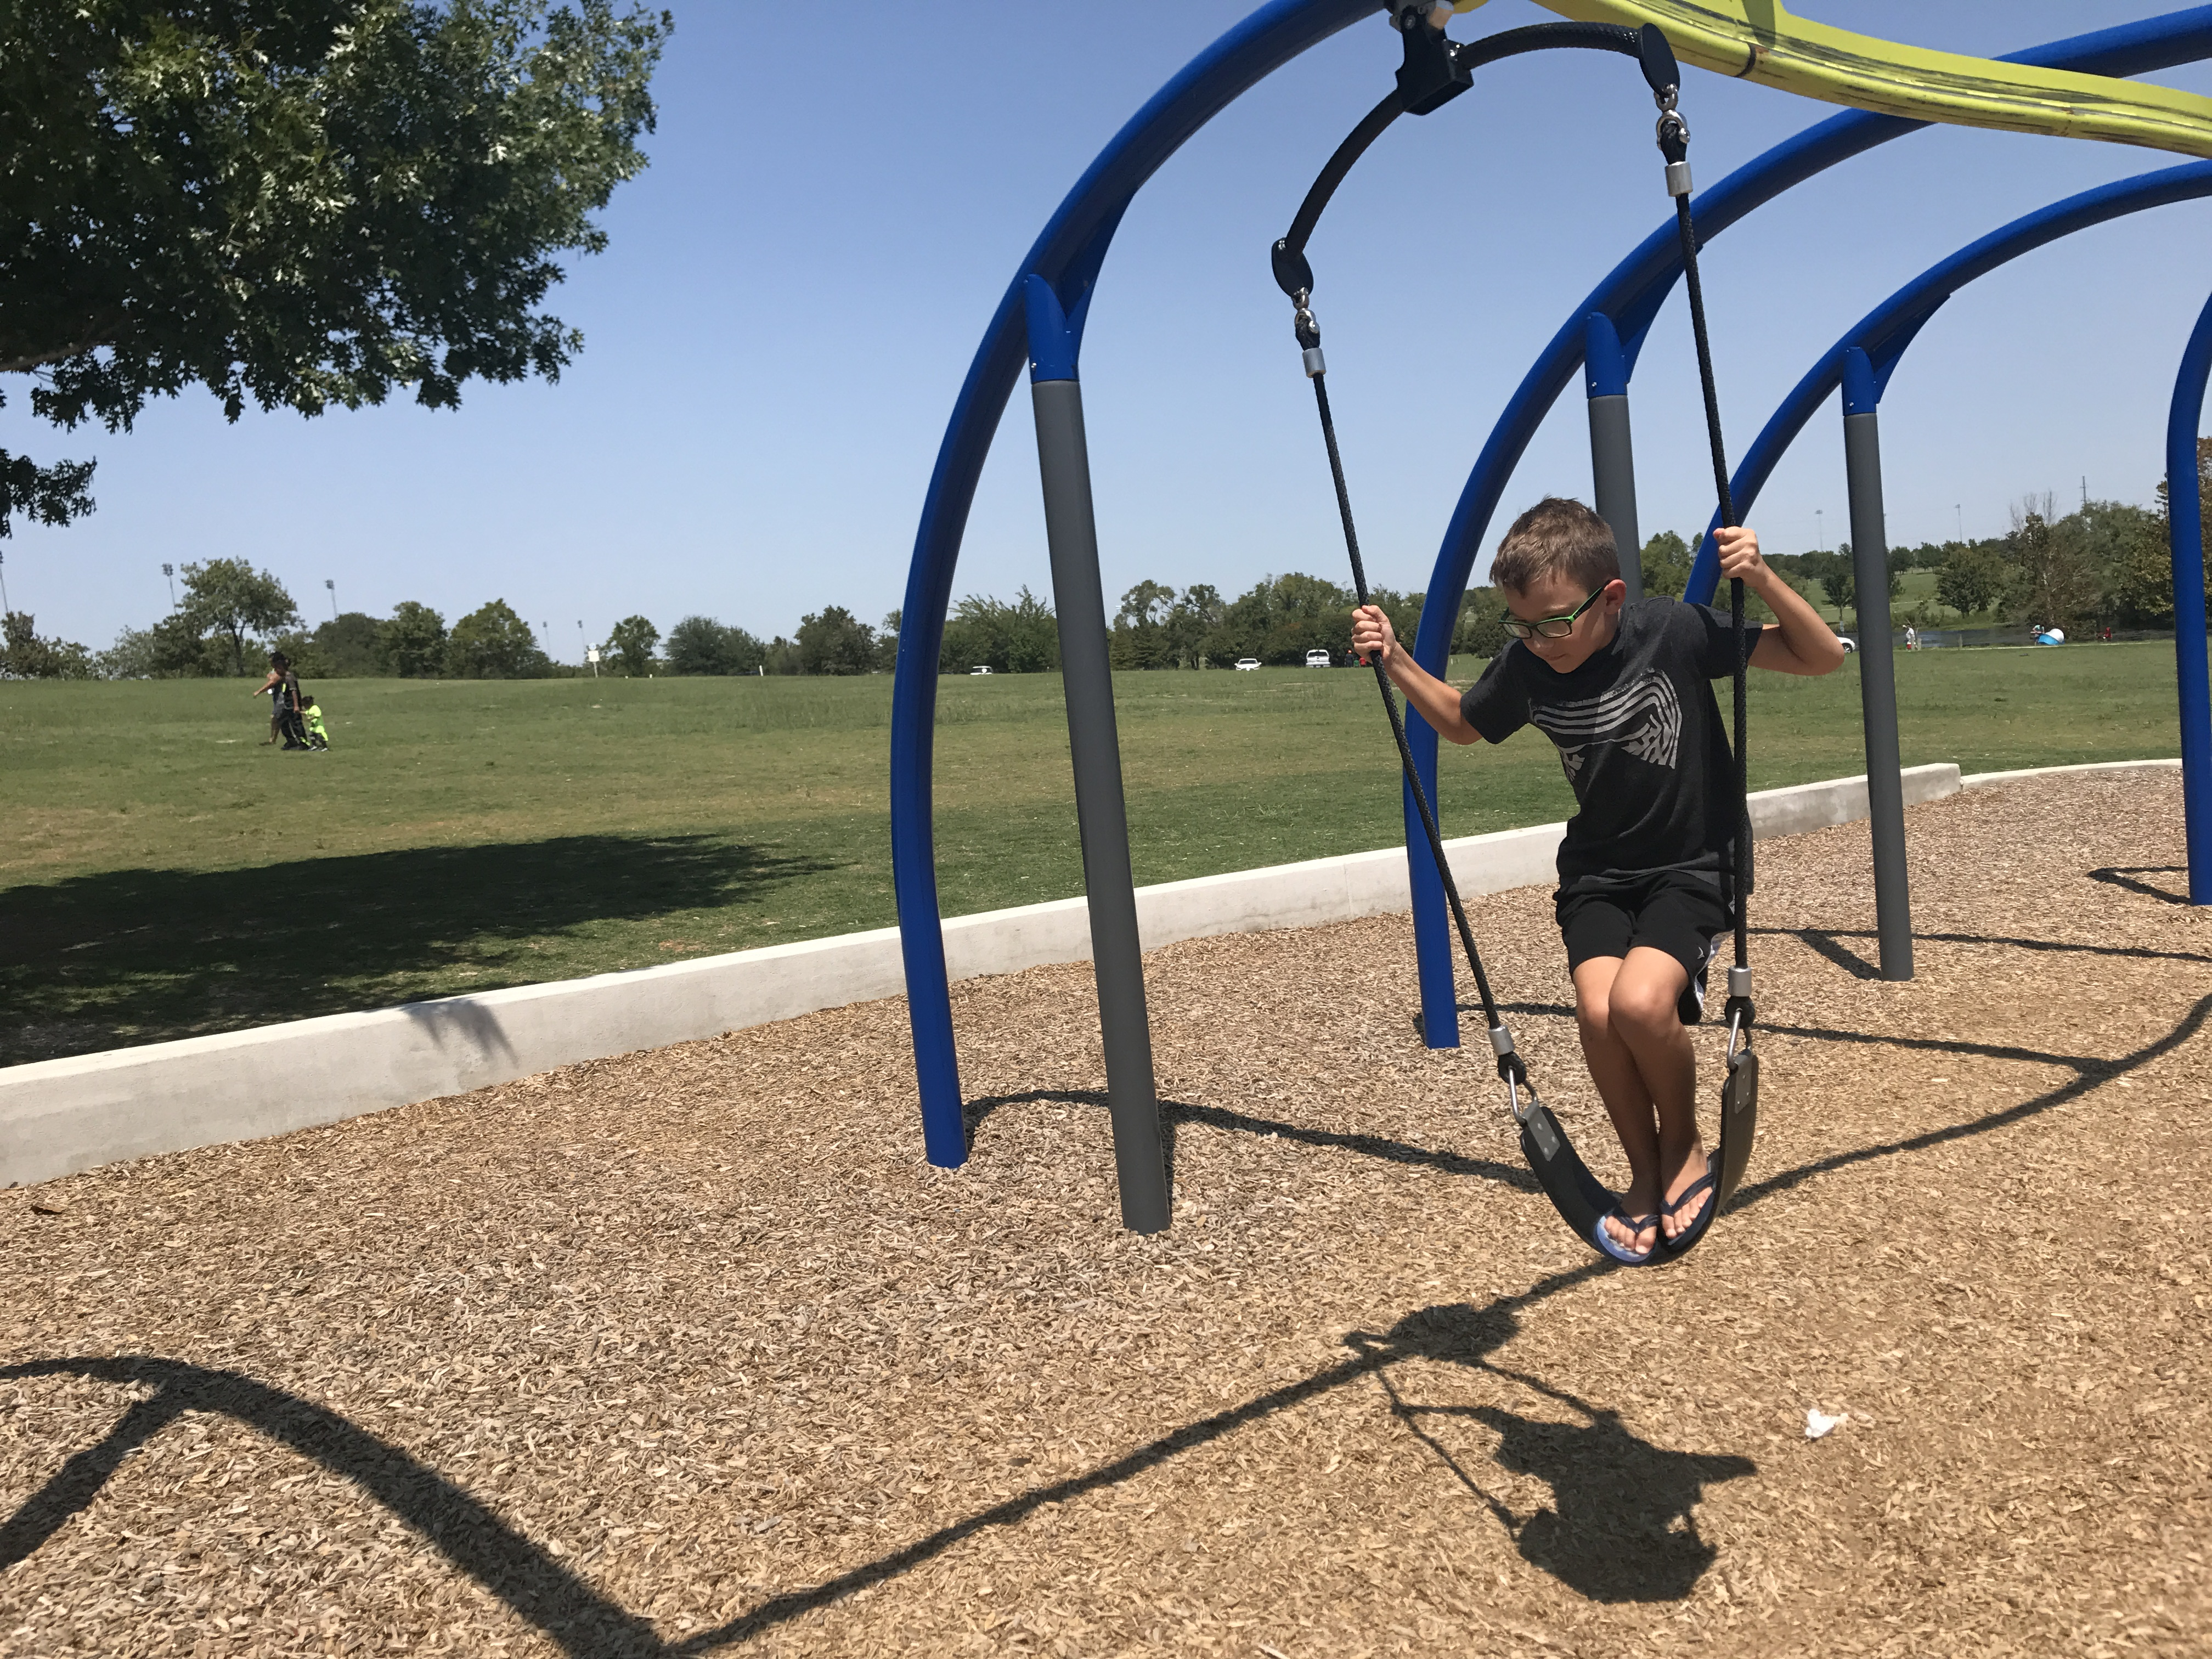 top 6 parks in round rock texas for children playgrounds playscapes. Black Bedroom Furniture Sets. Home Design Ideas